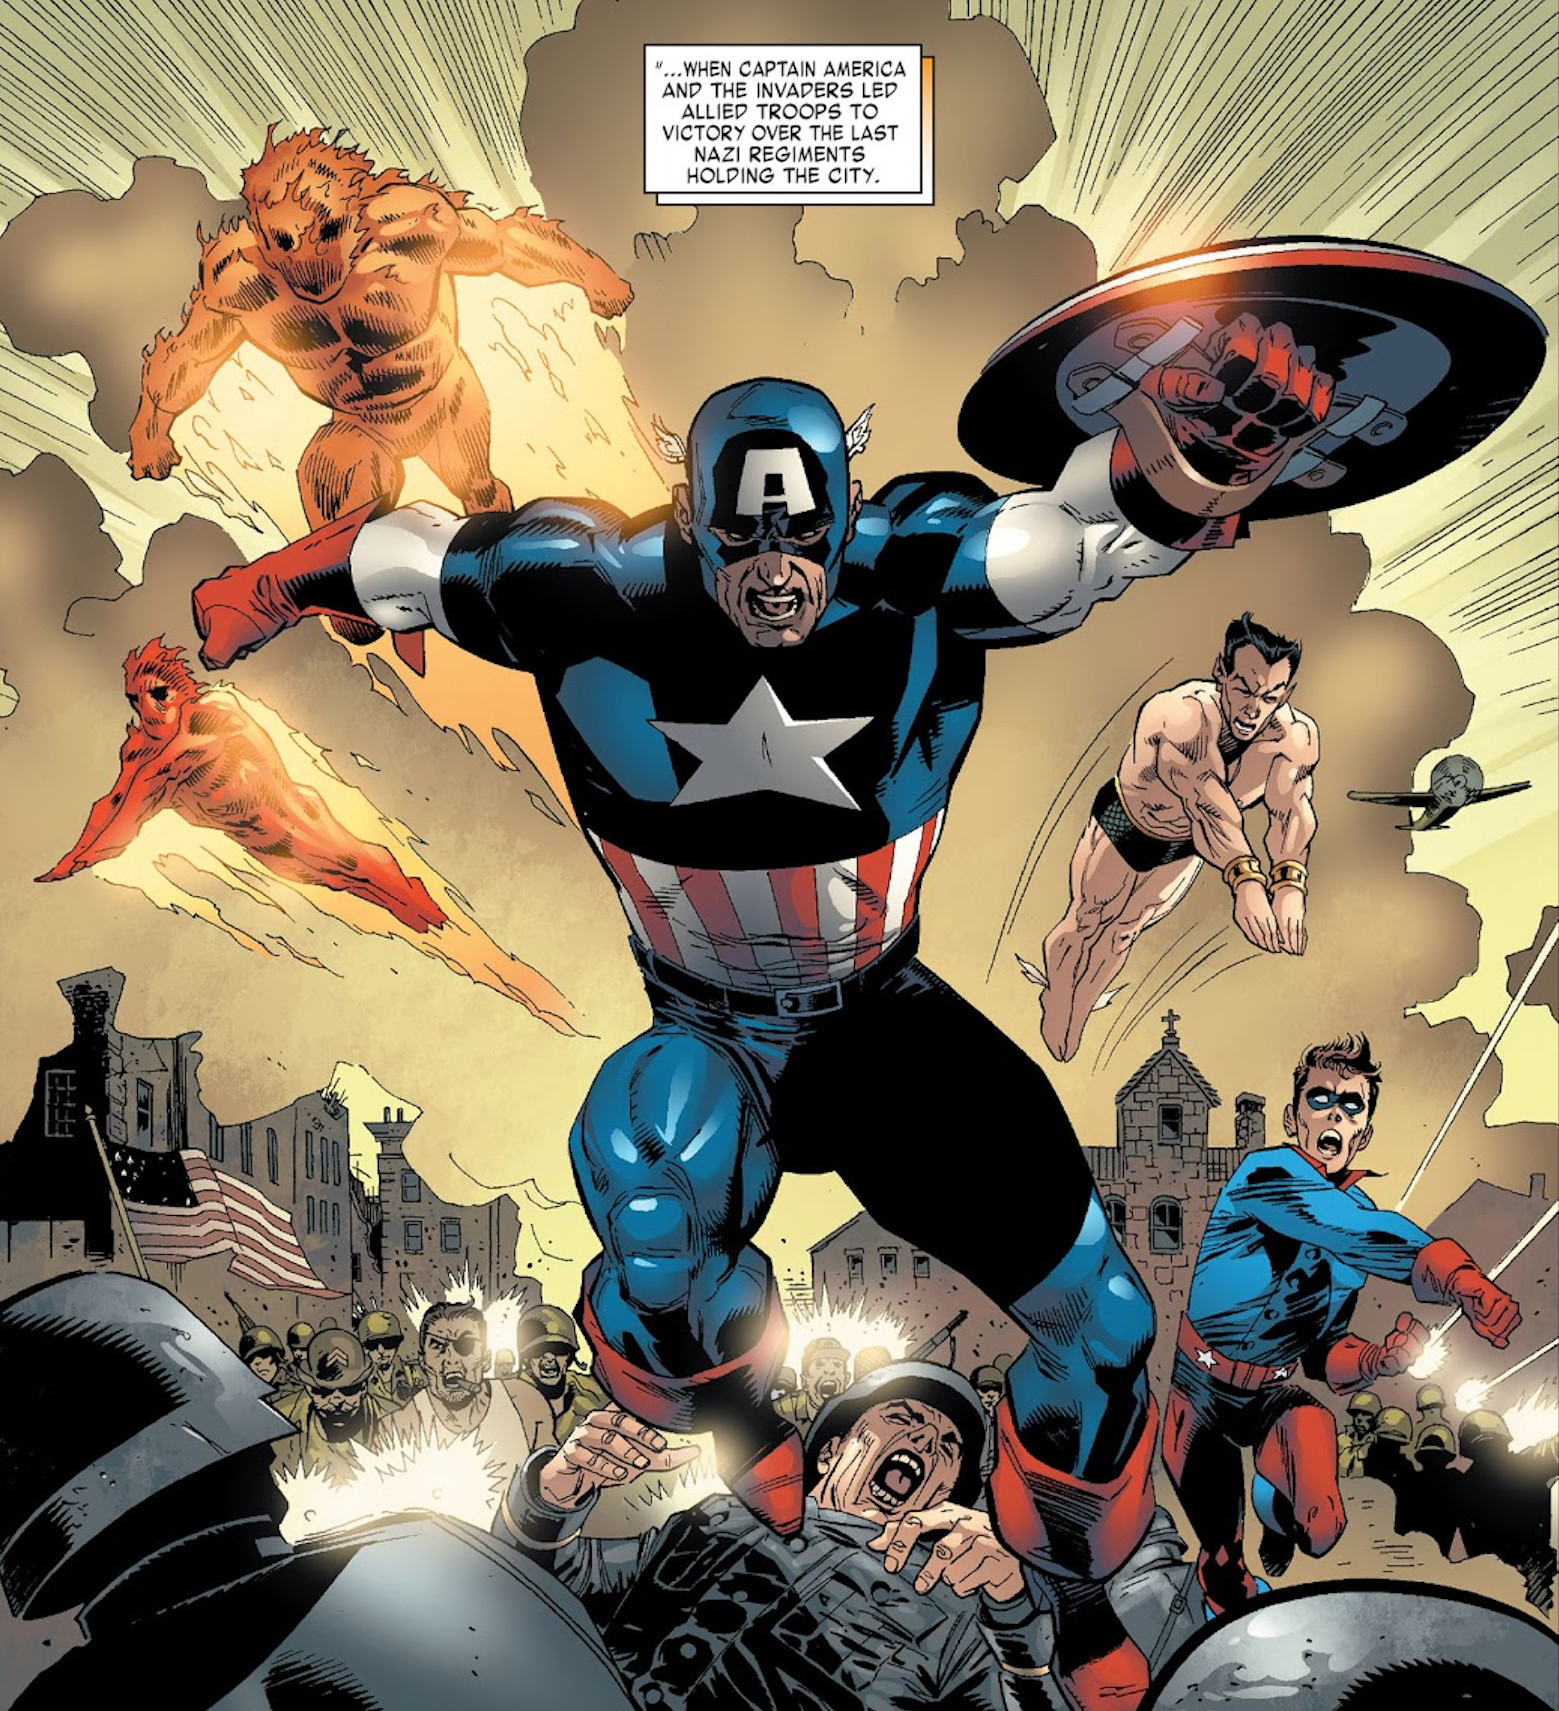 Invaders (Earth-58163) from Captain America Vol 5 10 0001.jpg